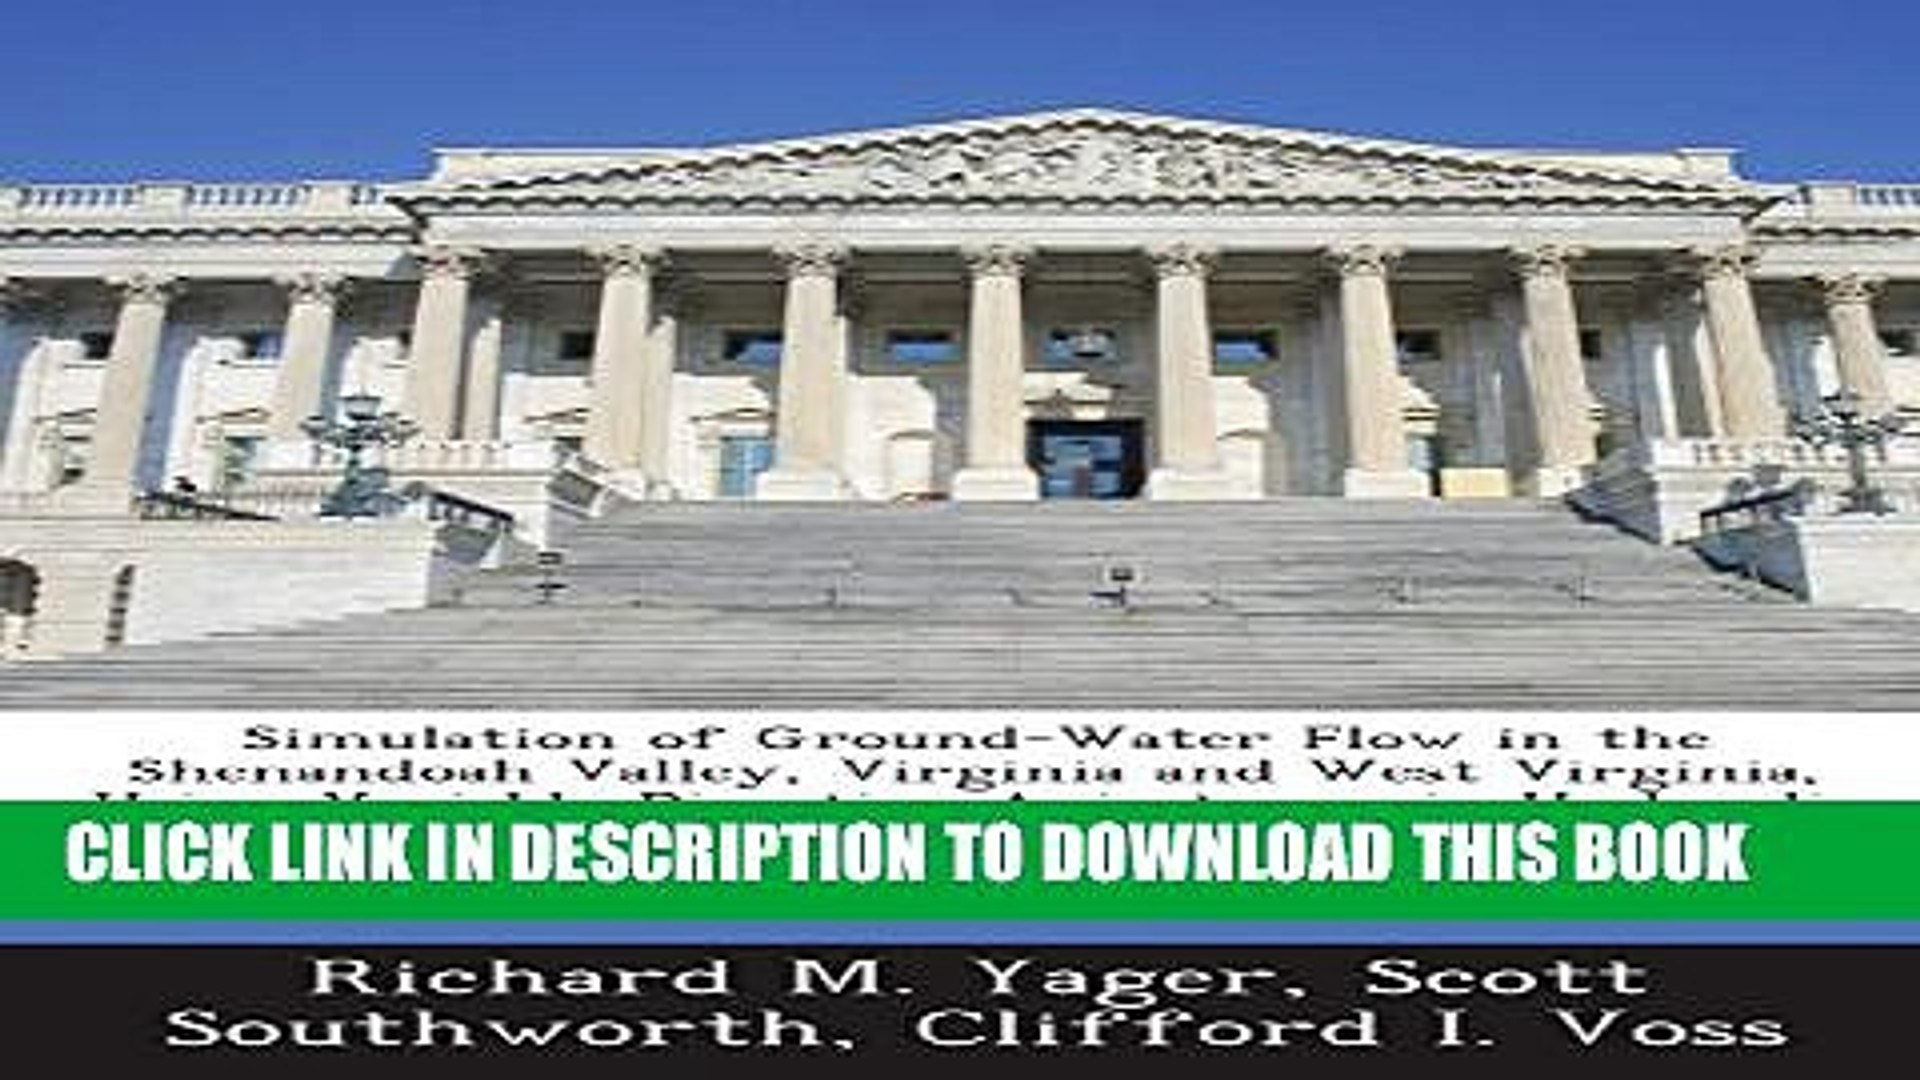 [PDF] Simulation of Ground-Water Flow in the Shenandoah Valley, Virginia and West Virginia, Using